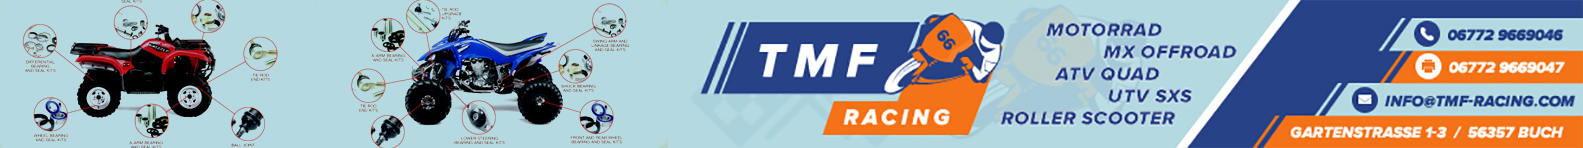 TMF-RACING High Performance MX & ATV & Street & ScooterParts